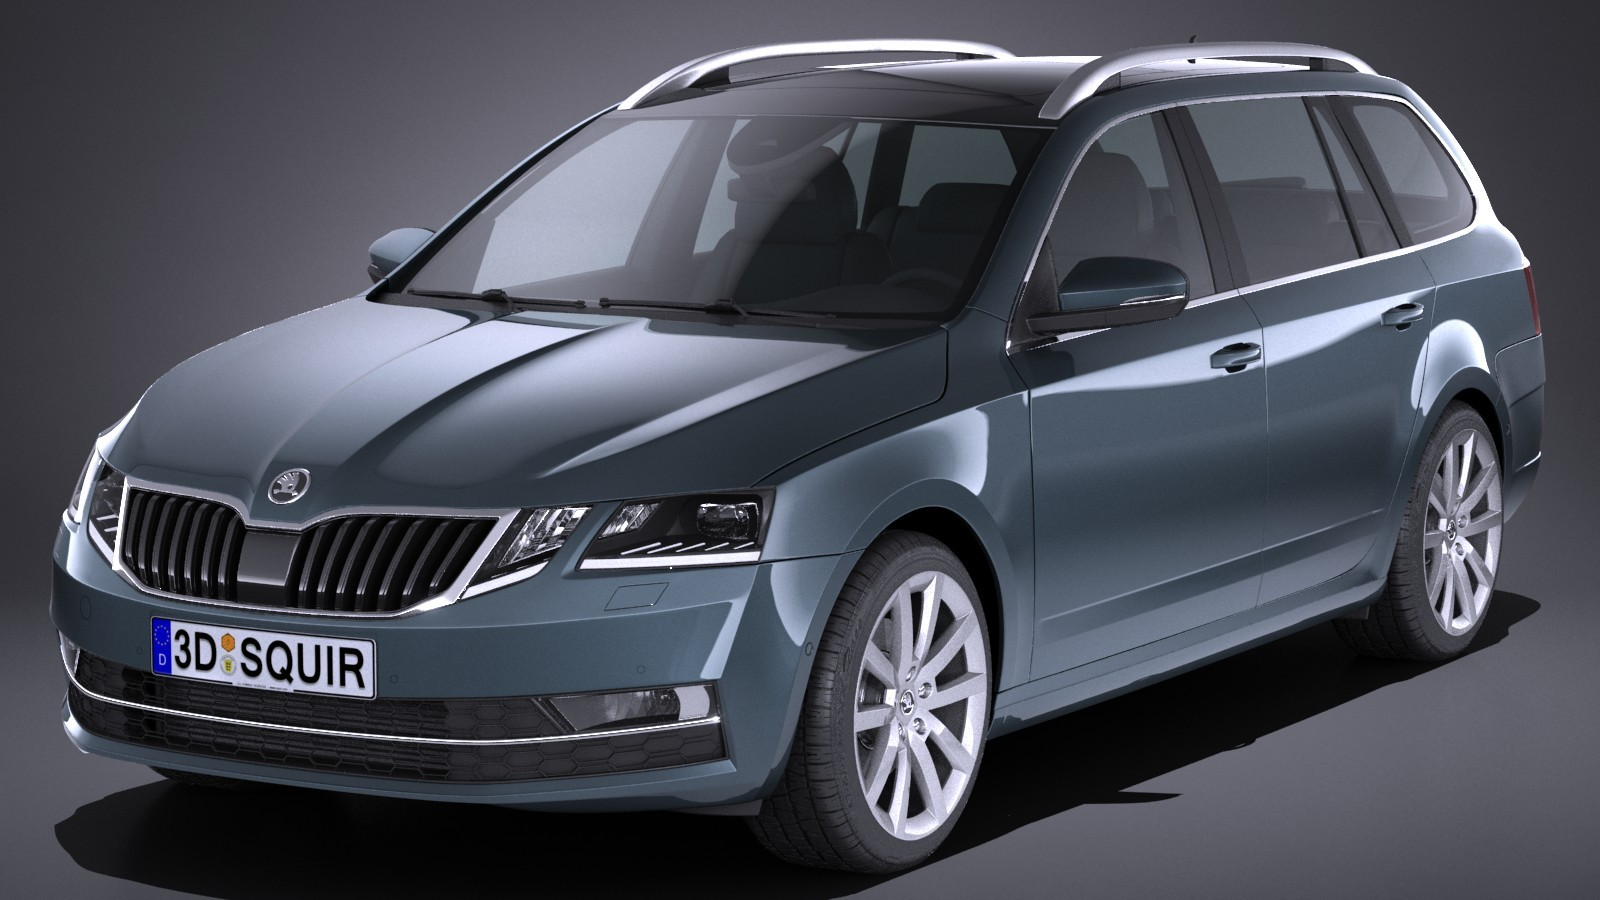 skoda octavia combi 2017 wagon car vehicles 3d models. Black Bedroom Furniture Sets. Home Design Ideas